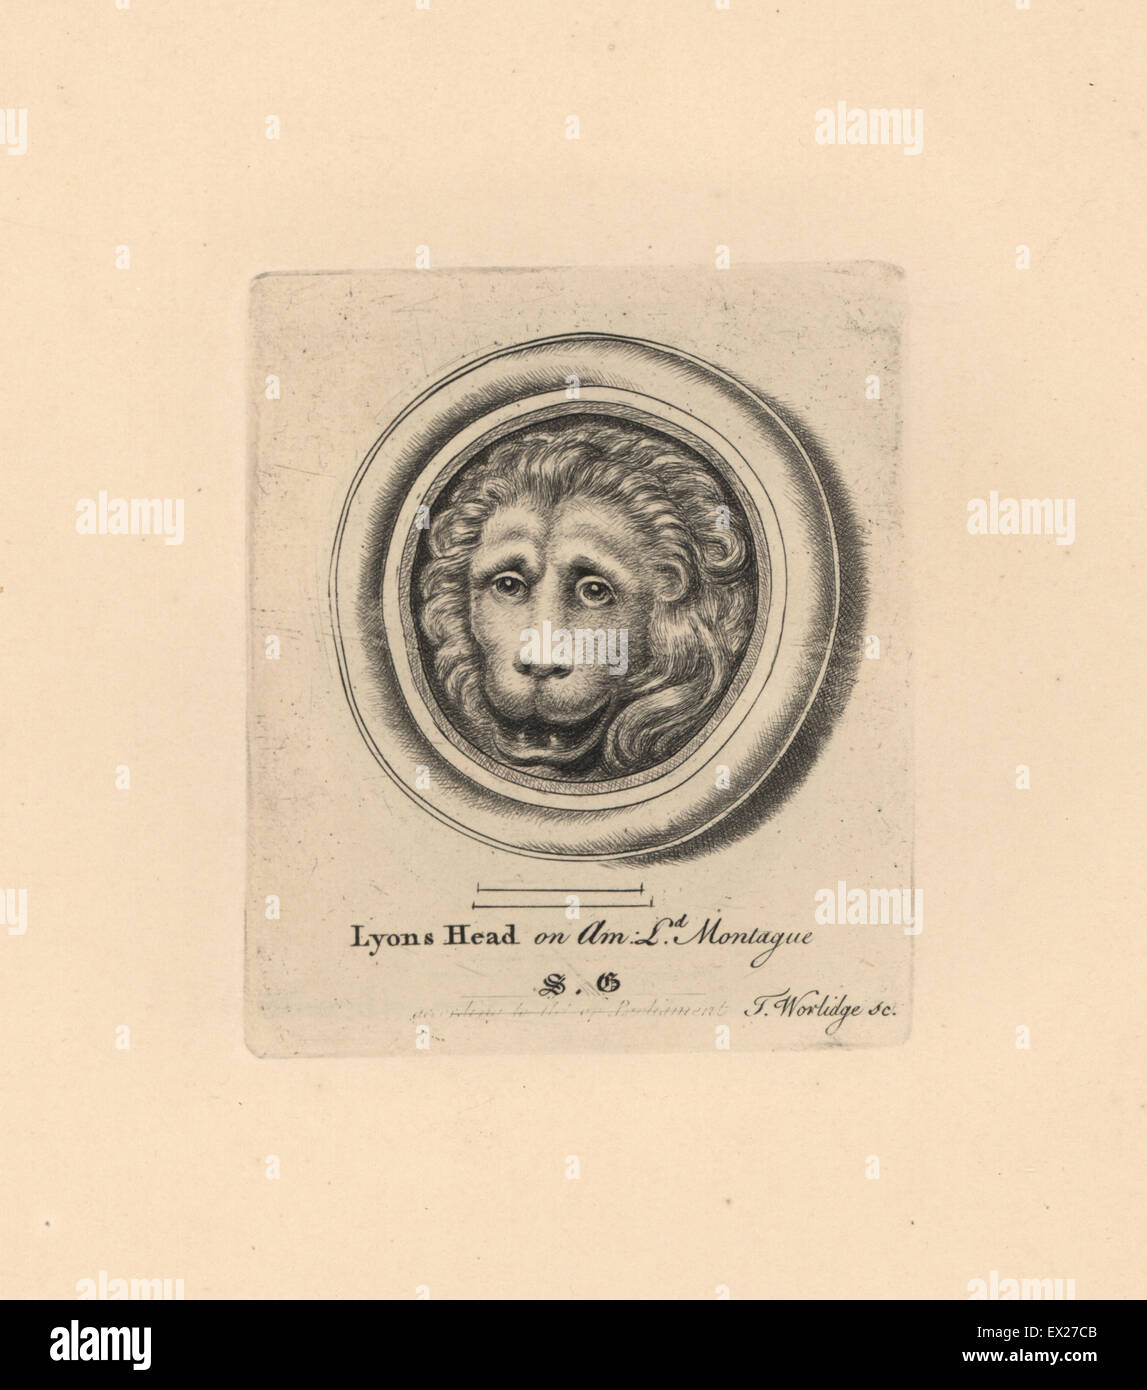 Portrait of a lion's head, on amethyst in Lord Montague's collection. Copperplate engraving by Thomas Worlidge - Stock Image